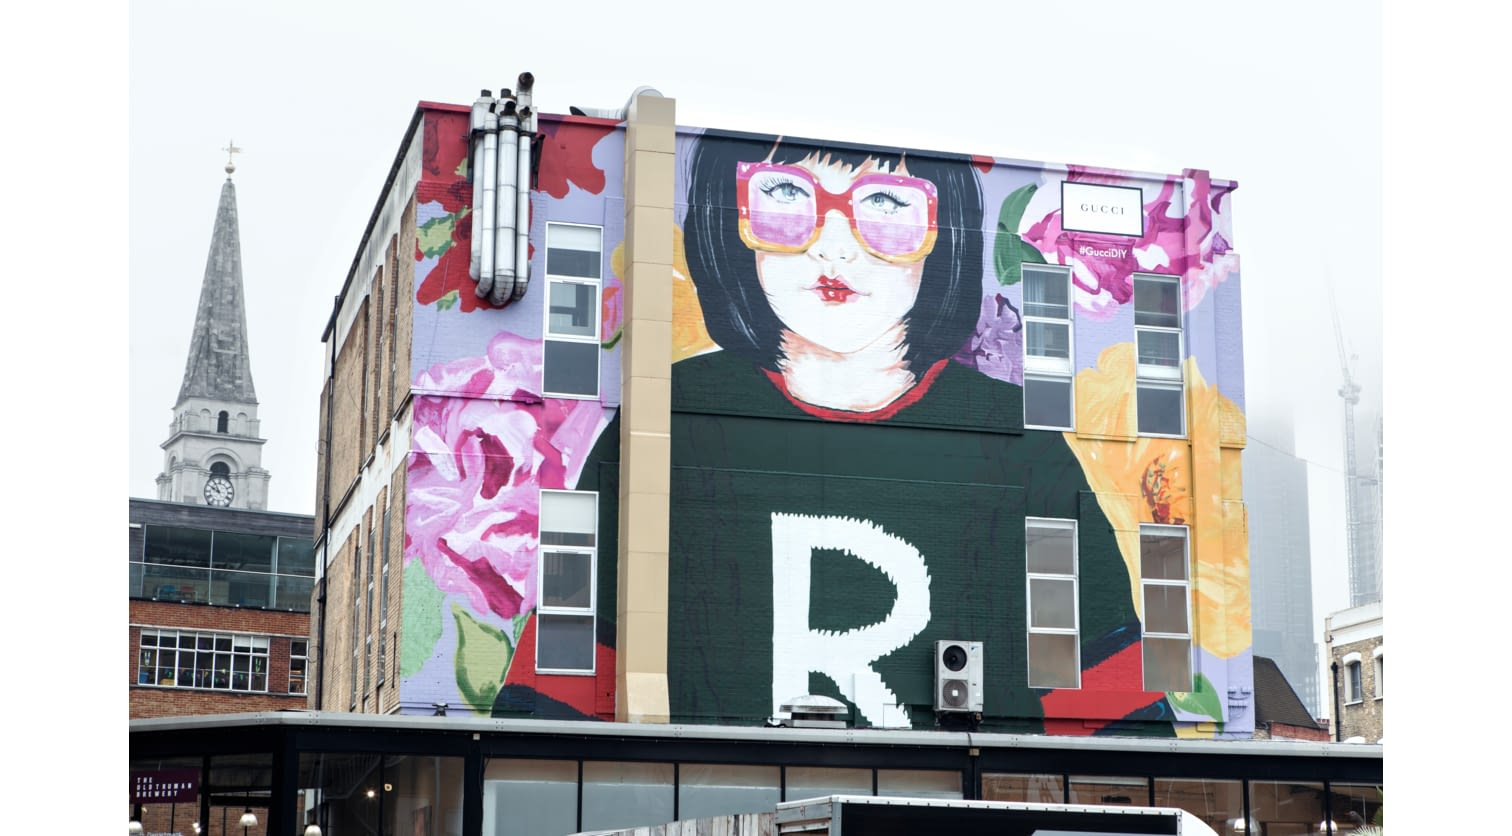 Gucci ArtWall DIY London_002_Courtesy of Samuel Keyte.jpg